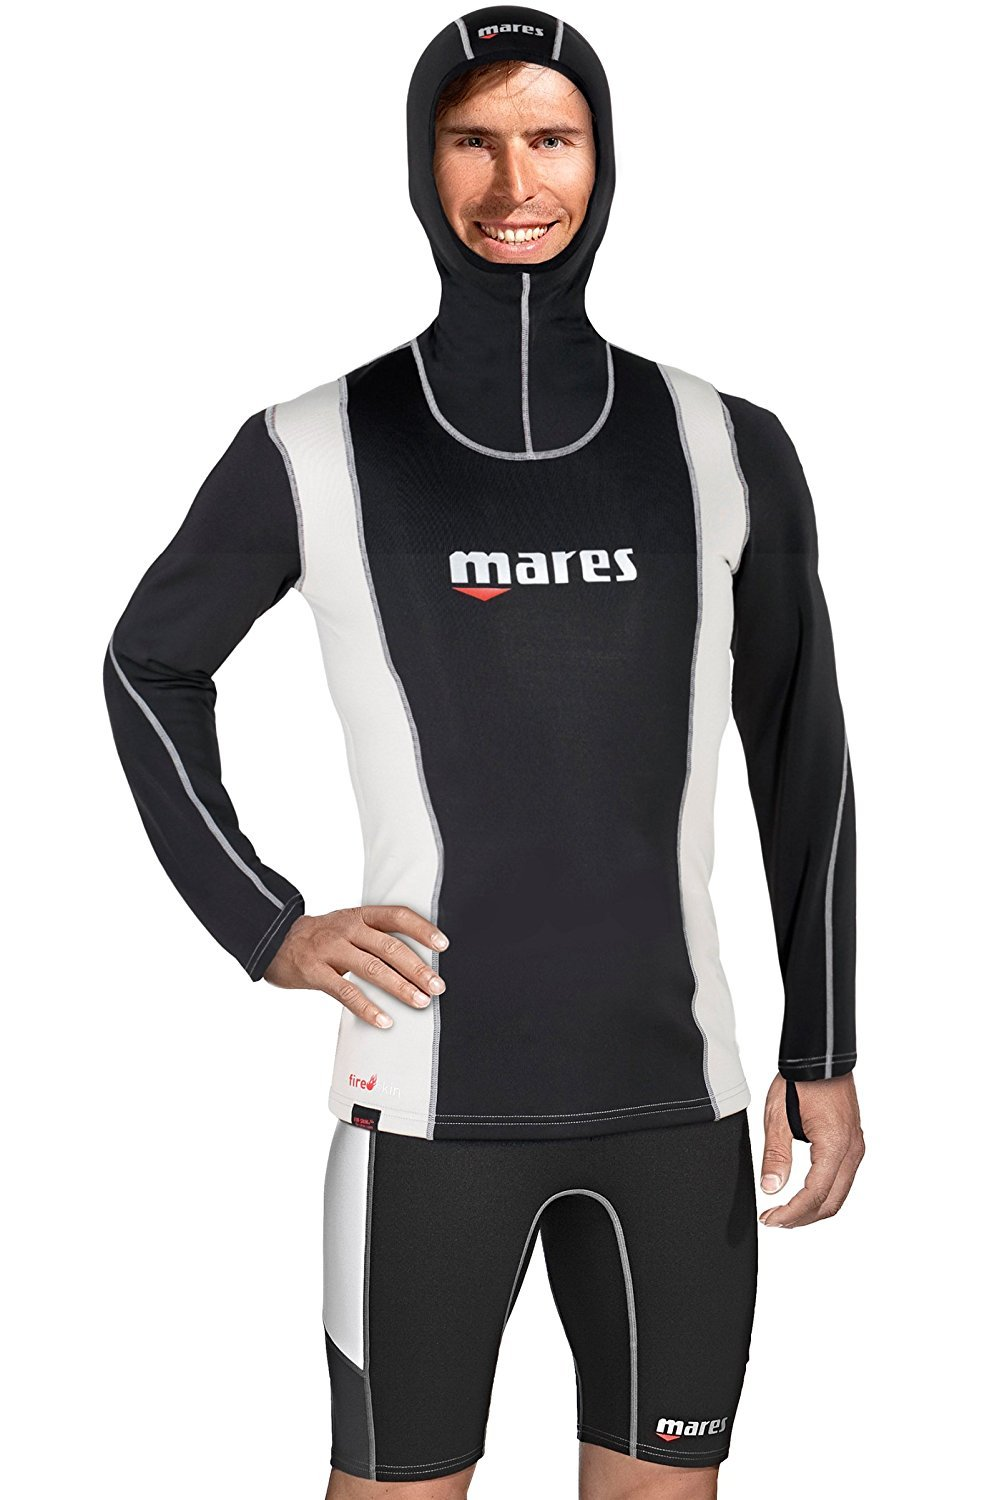 Mares Men's Fire Skin Long Sleeve Hooded Vest Watersport Protection Gear, Small